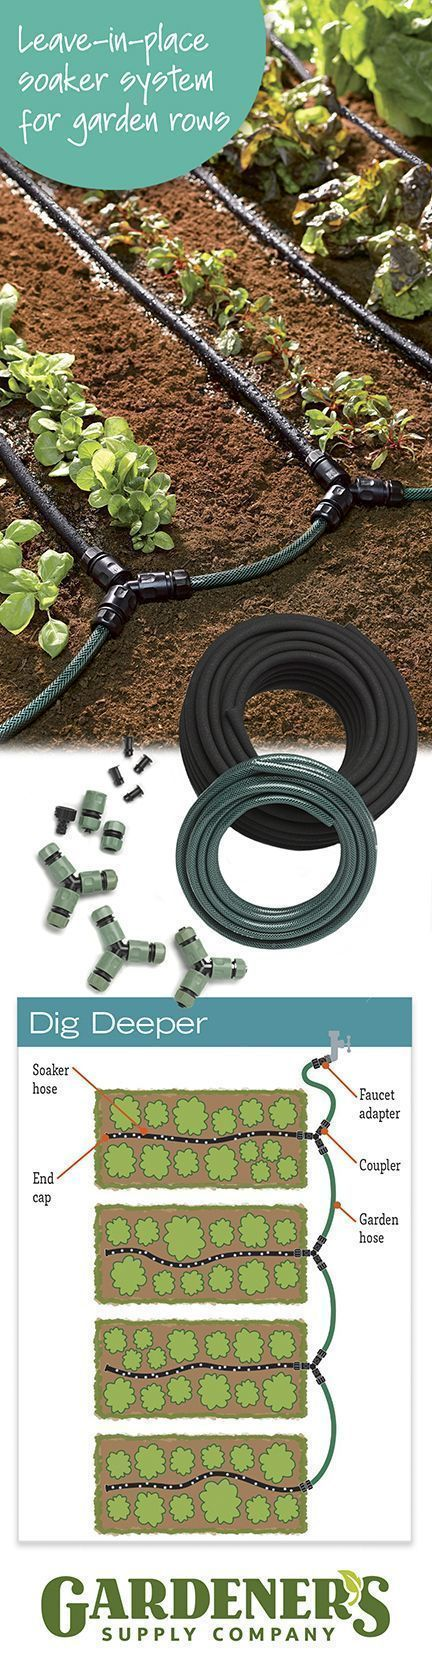 Customizable Vegetable Garden Row Soaker Hose System — Complete Kit Installs in Minutes, Waters Plants All Season!